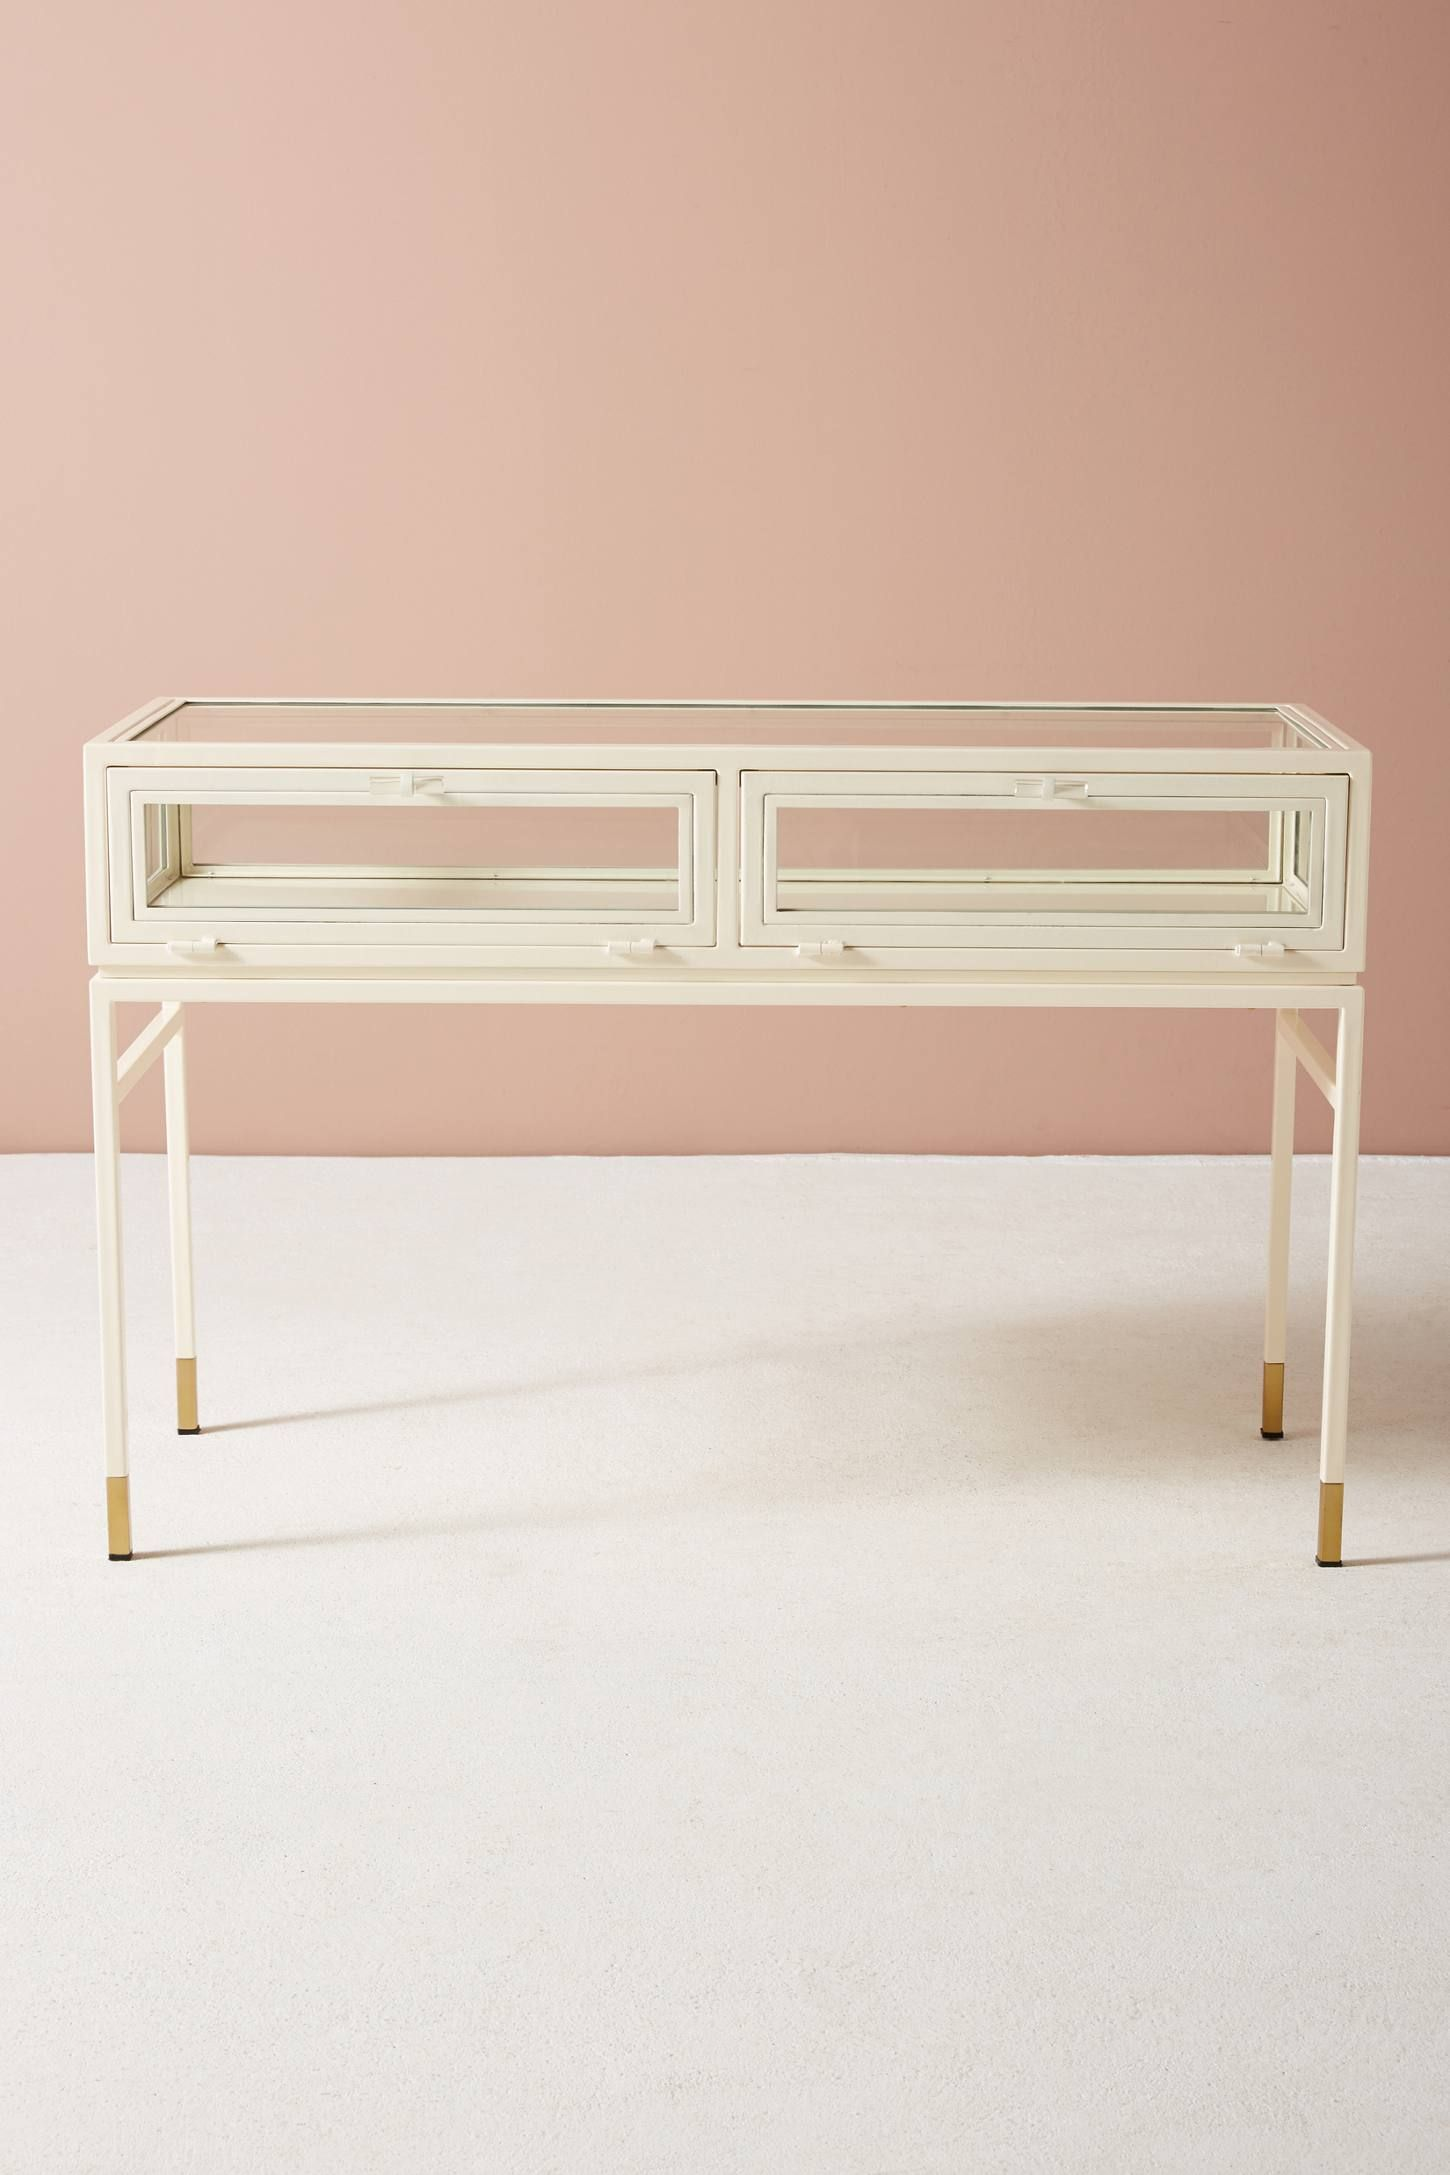 Shop The Tannehill Display Storage Console Table And More Anthropologie At Anthropologie Today Read Customer Reviews Disc Display Storage Console Table Table